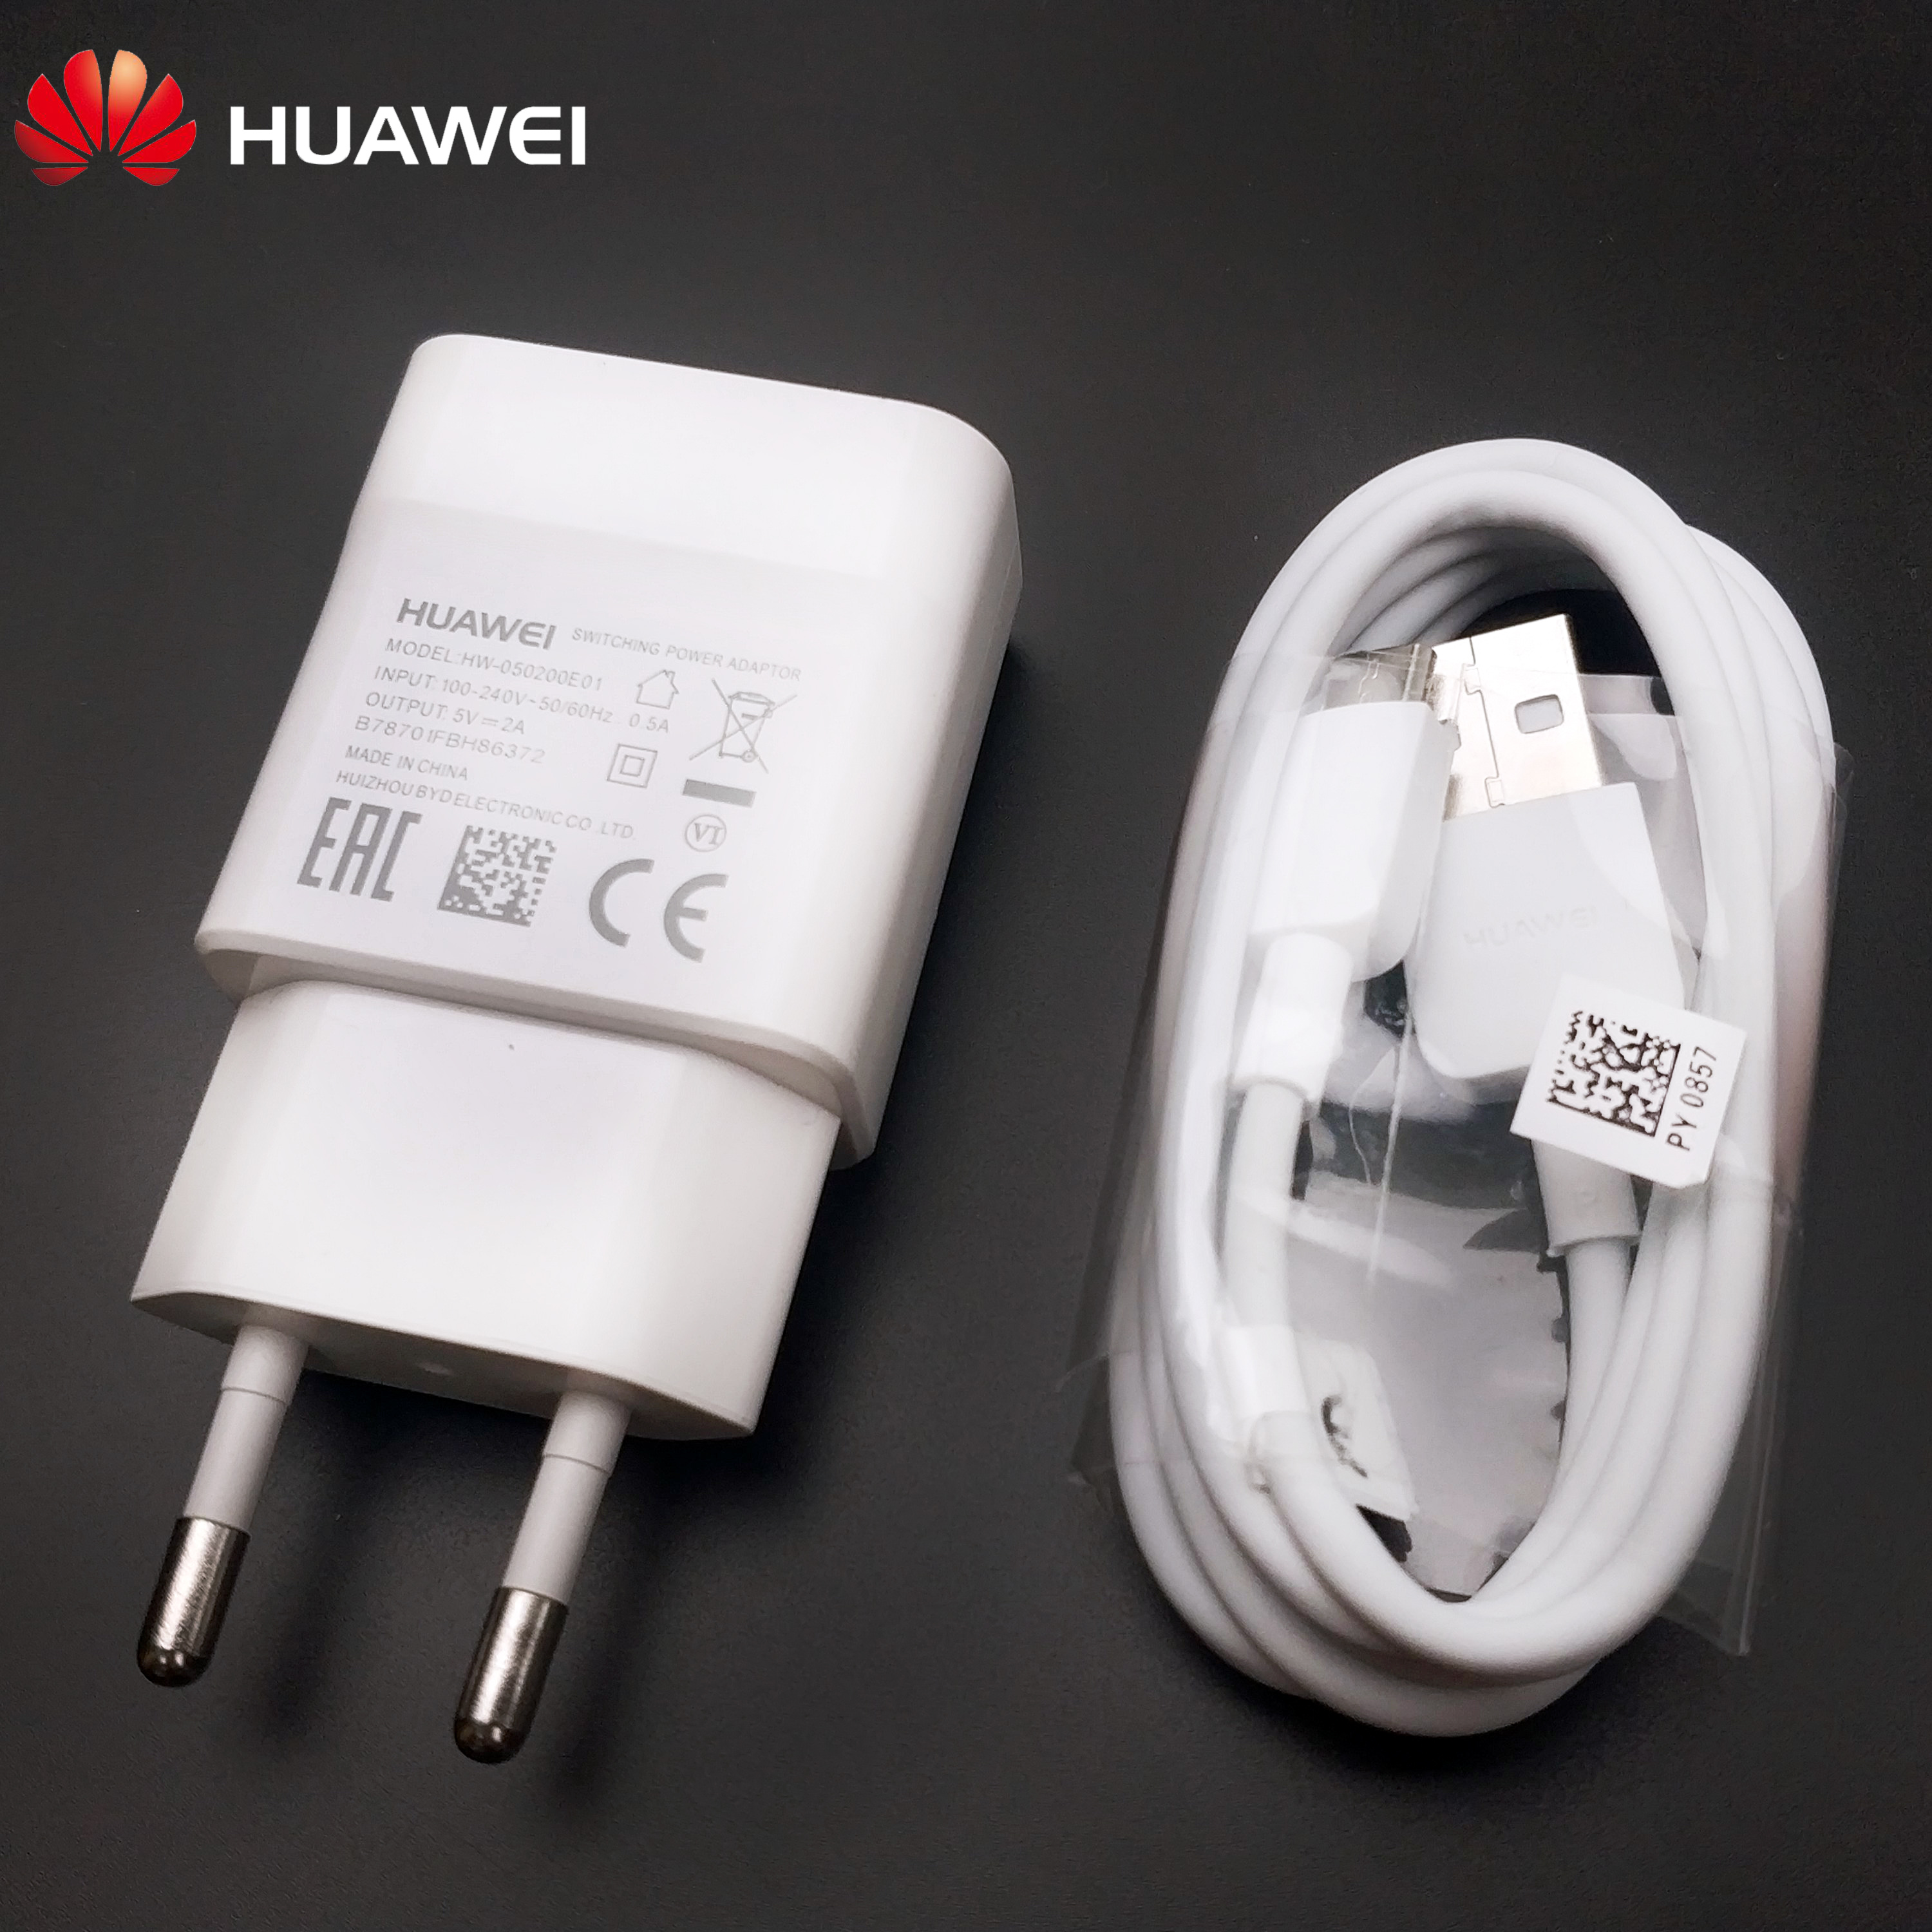 Huawei P smart Charger <font><b>original</b></font> for <font><b>Honor</b></font> 6A 6X 6C 7X 7A 7C 8 <font><b>9</b></font> 5A P8 P9 <font><b>lite</b></font> mini 2017 Mobile phone 2A eu Travel charge adapter image